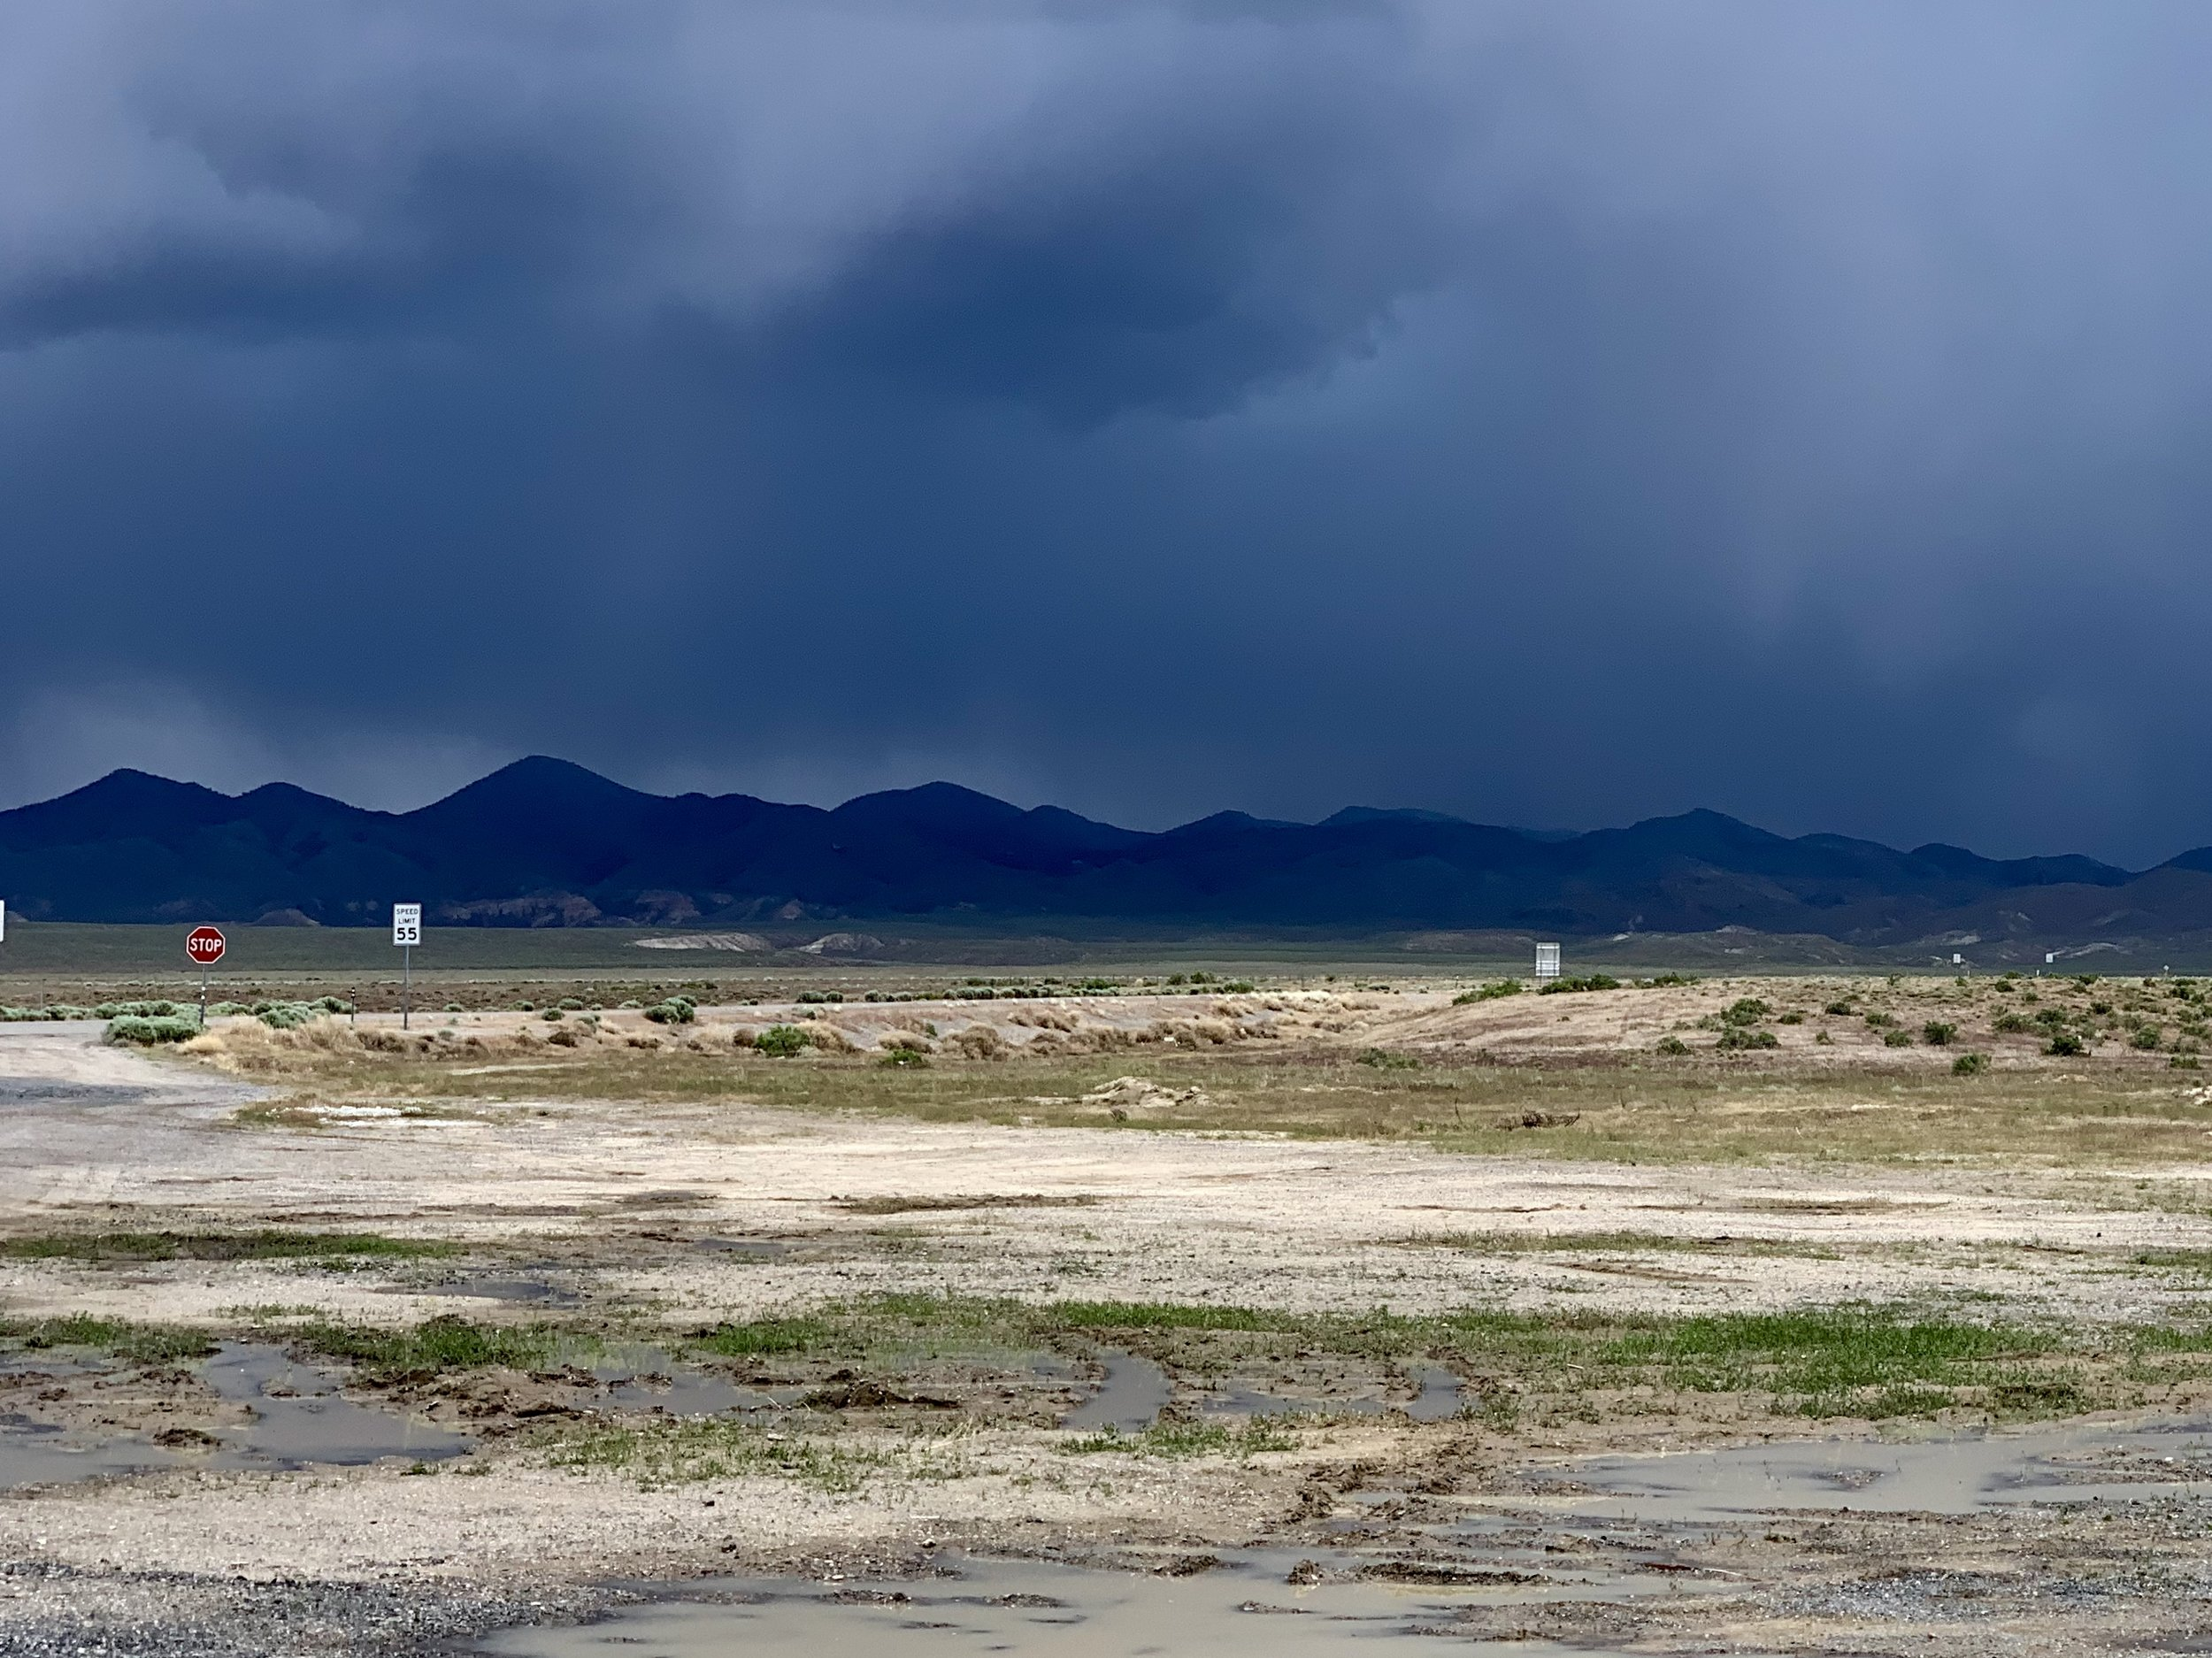 Storm clouds forming to the east of Middlegate, Nevada.